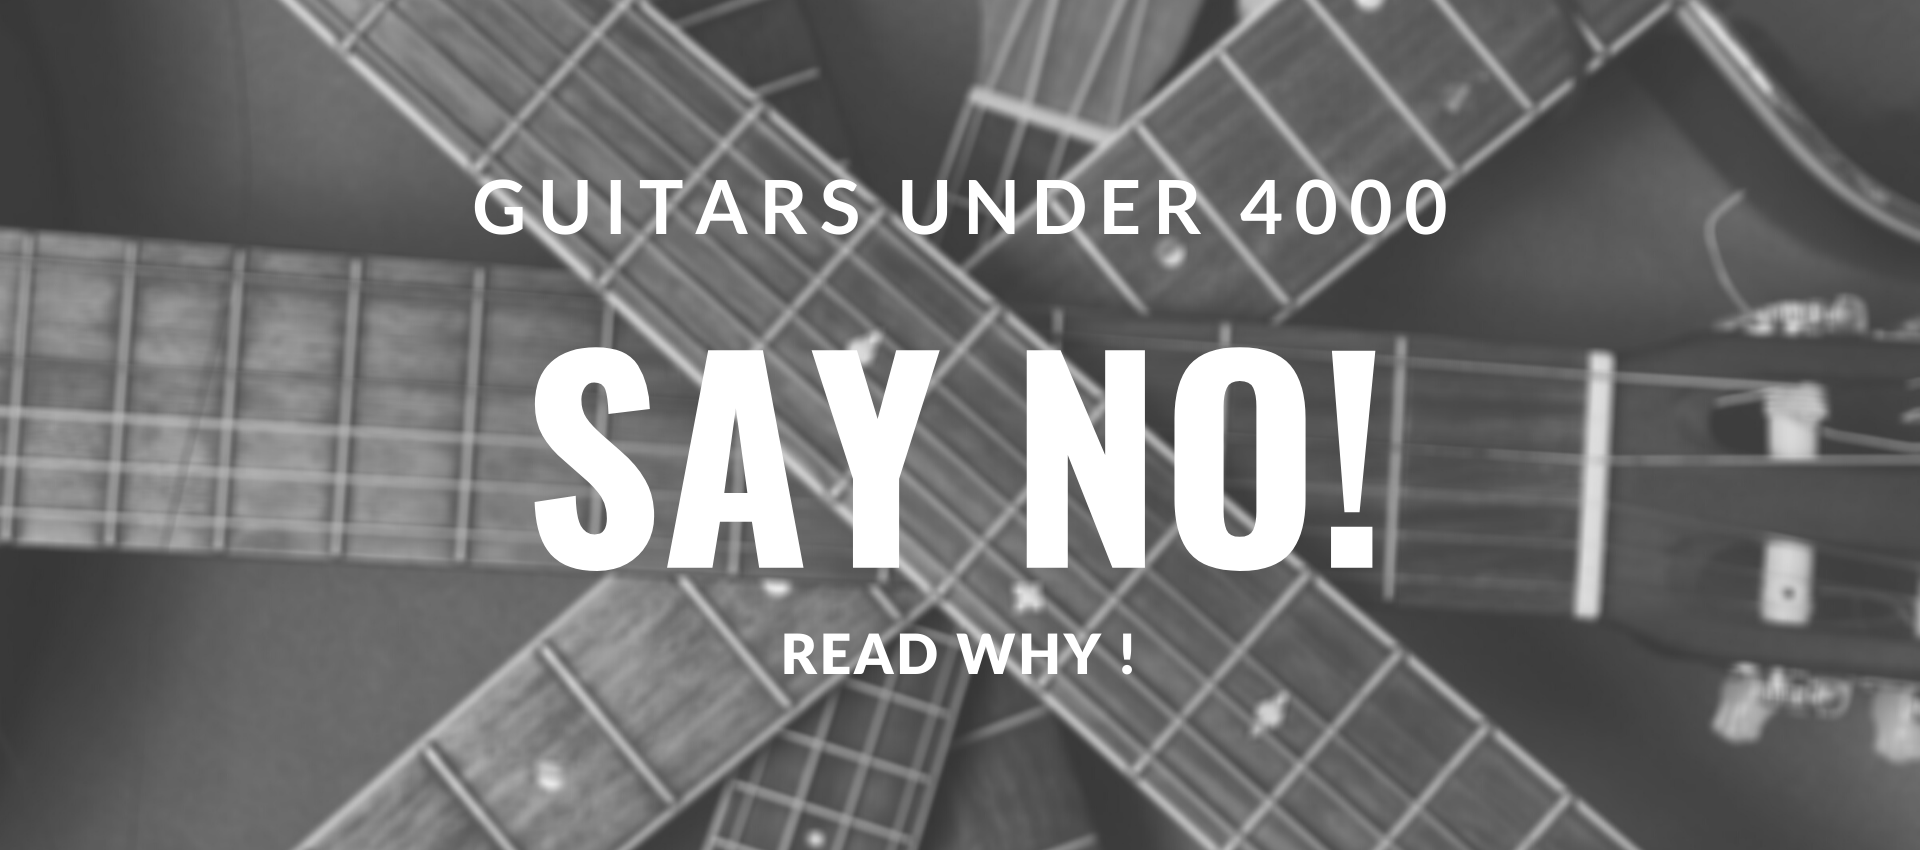 Guitar under 4000 Cheapest guitar online in india